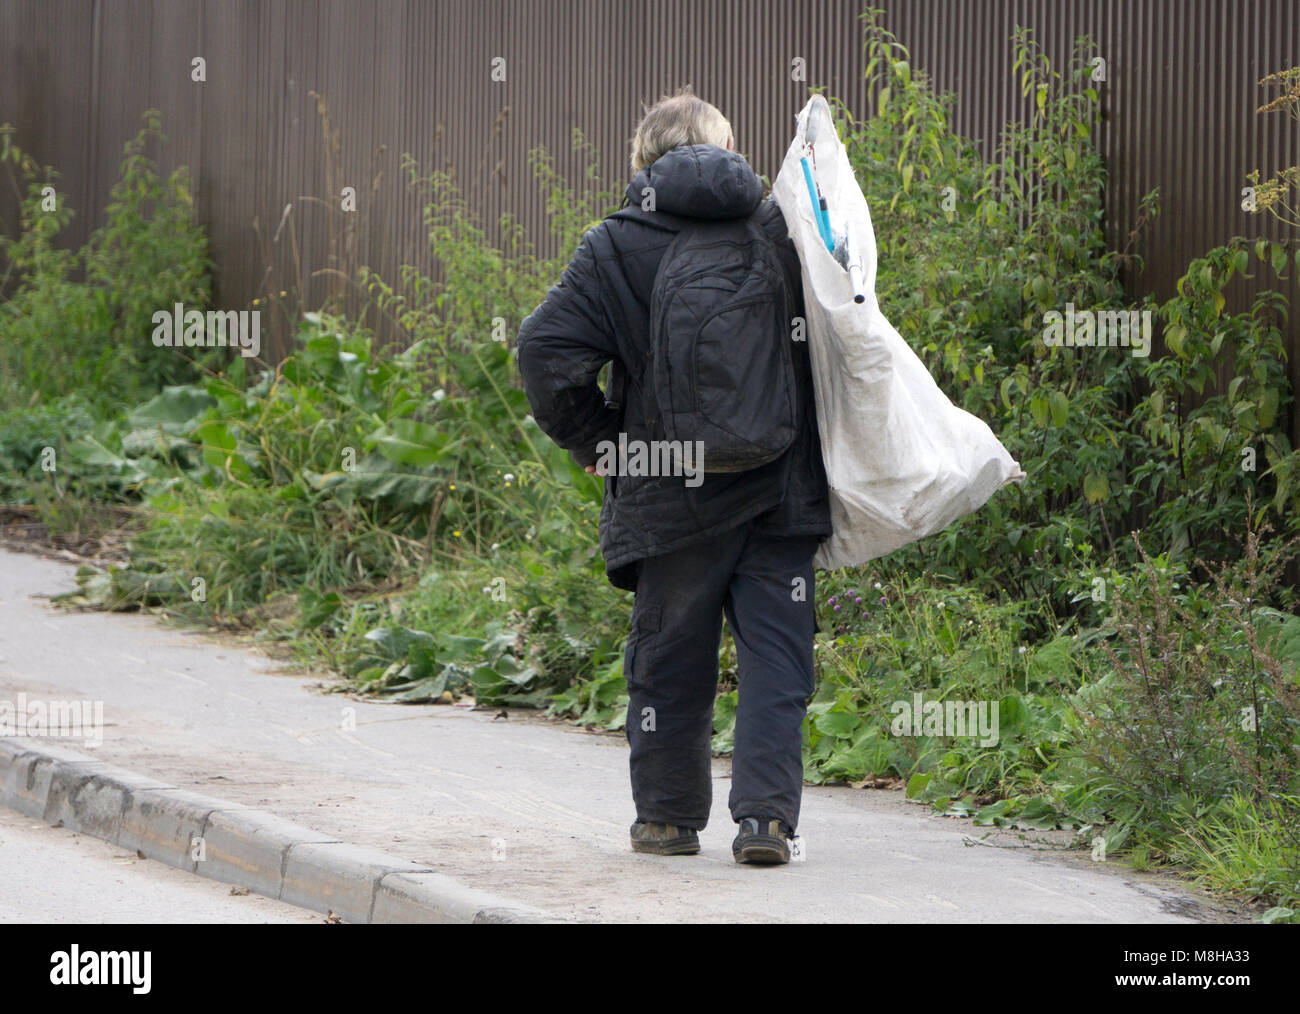 Neglectful man throwing out the garbage in the forest - Stock Image